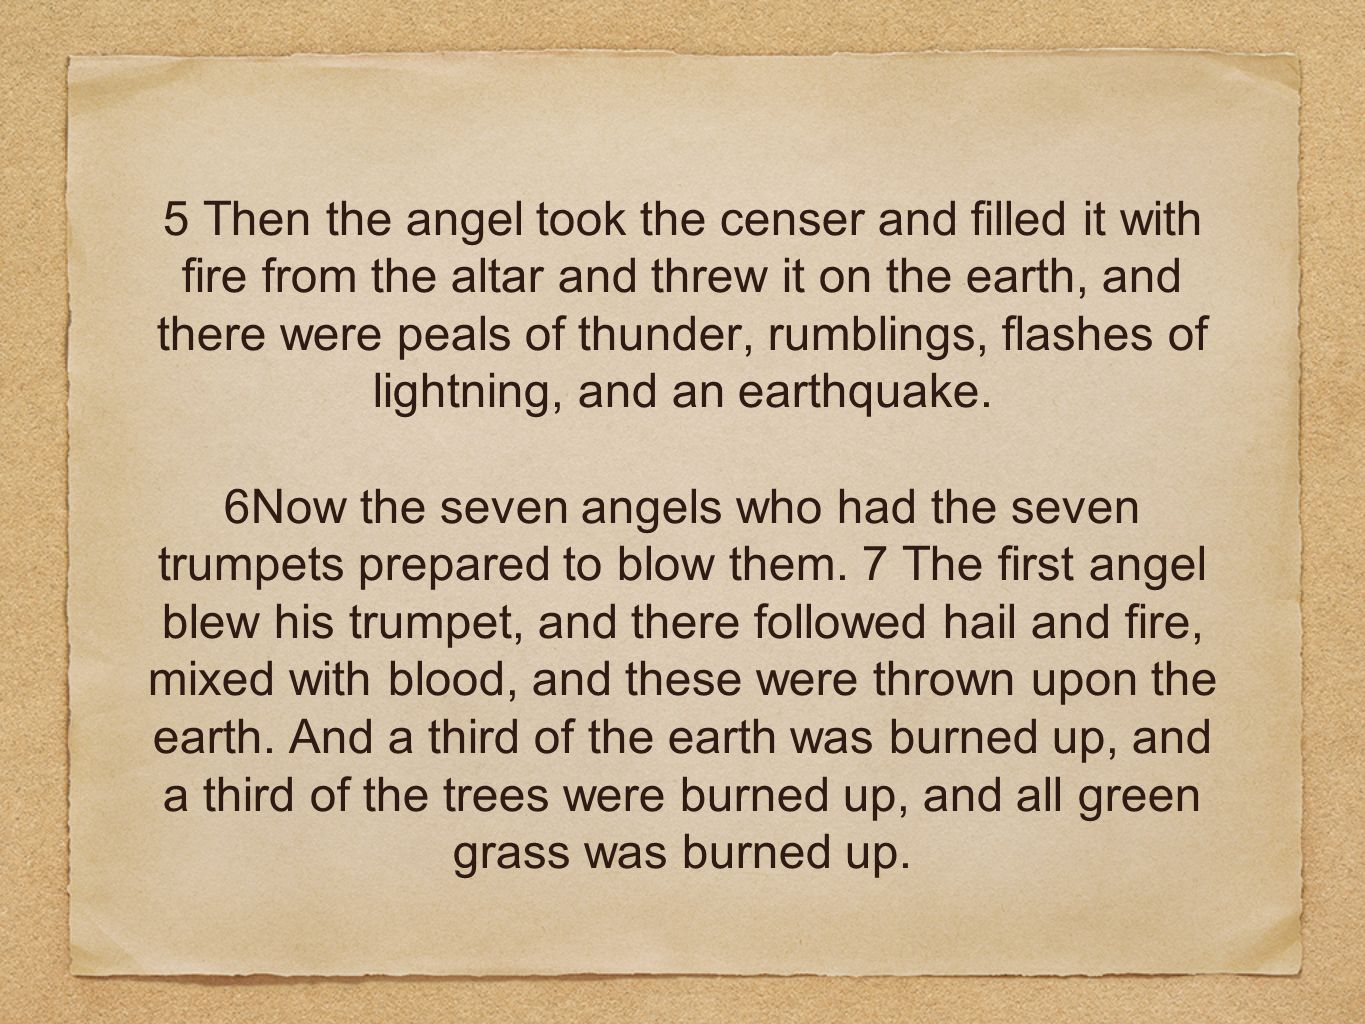 5 Then the angel took the censer and filled it with fire from the altar and threw it on the earth, and there were peals of thunder, rumblings, flashes